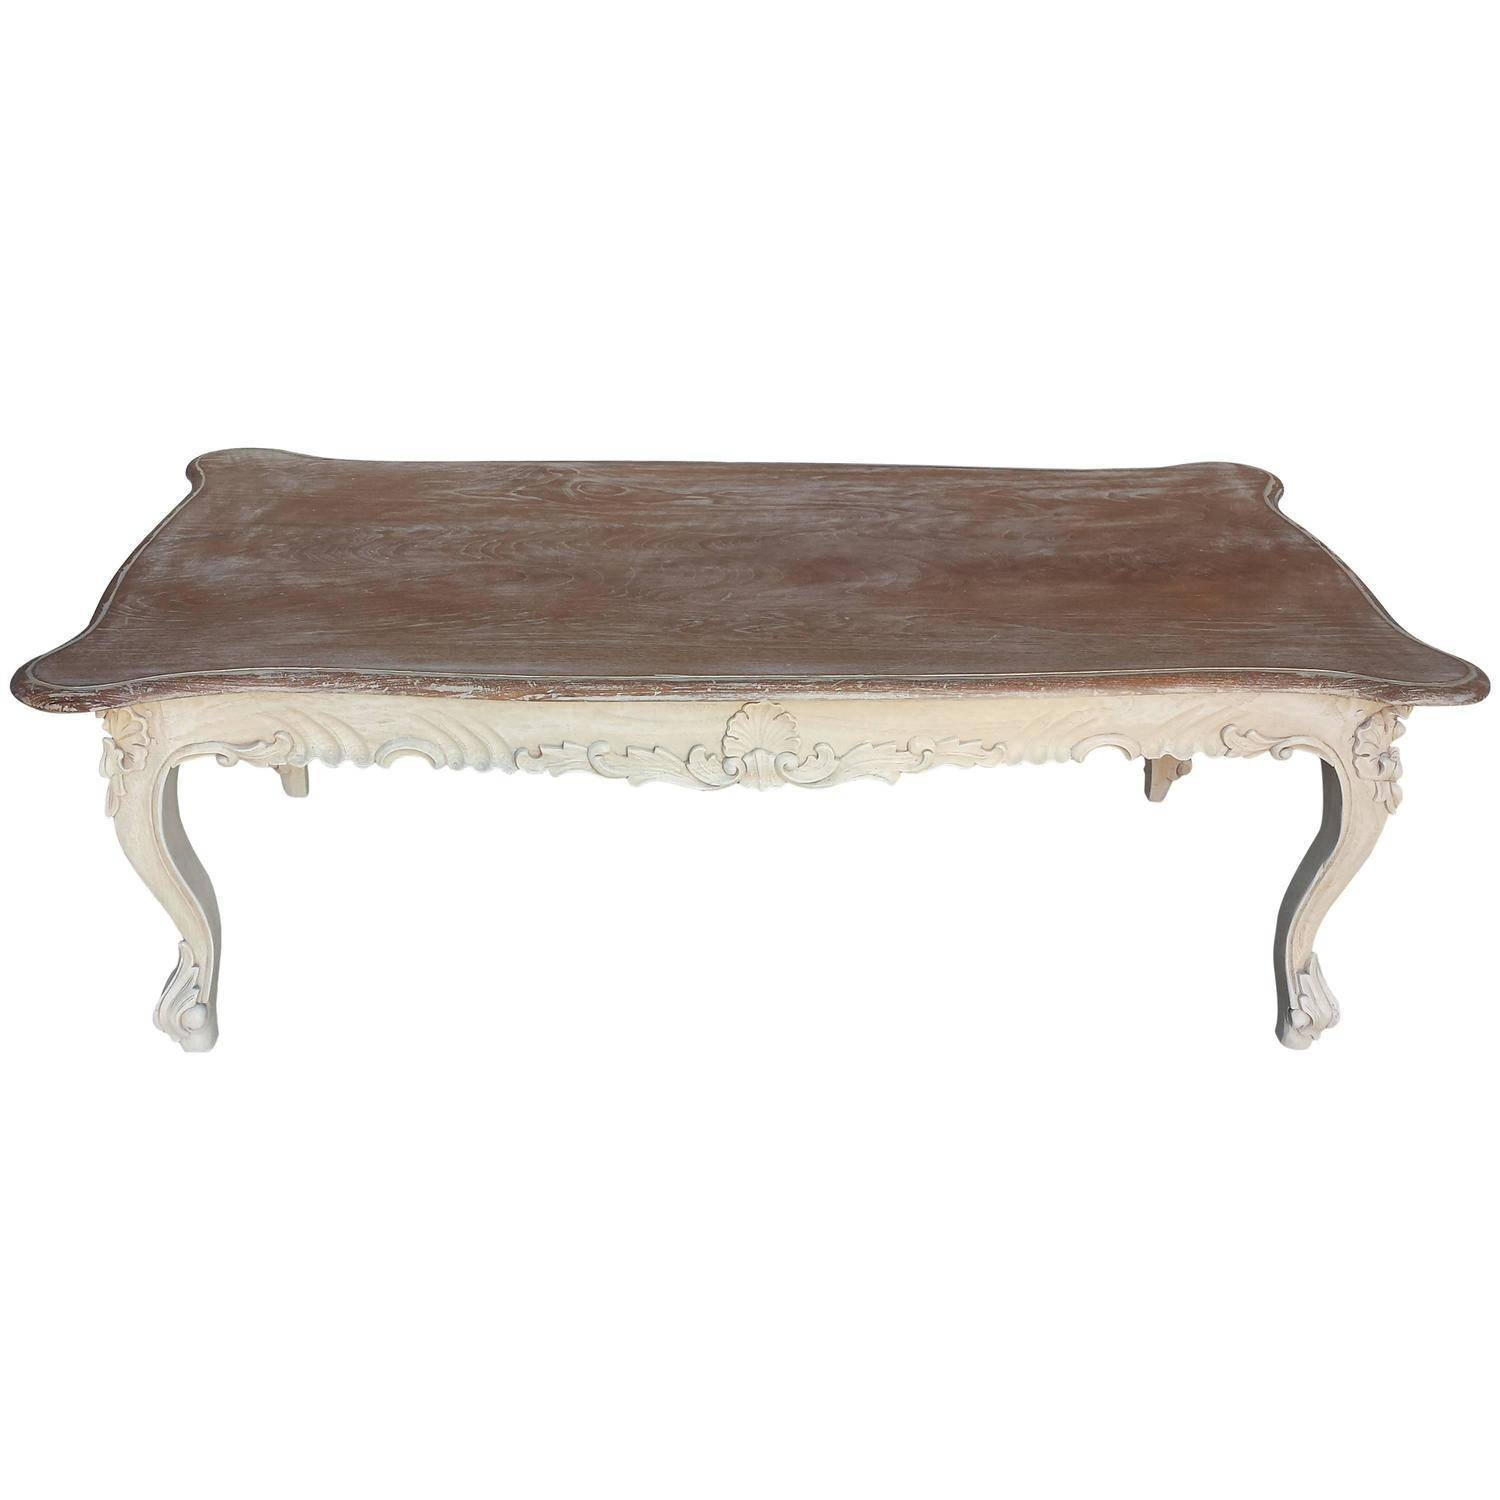 30 Collection of French Country Coffee Tables